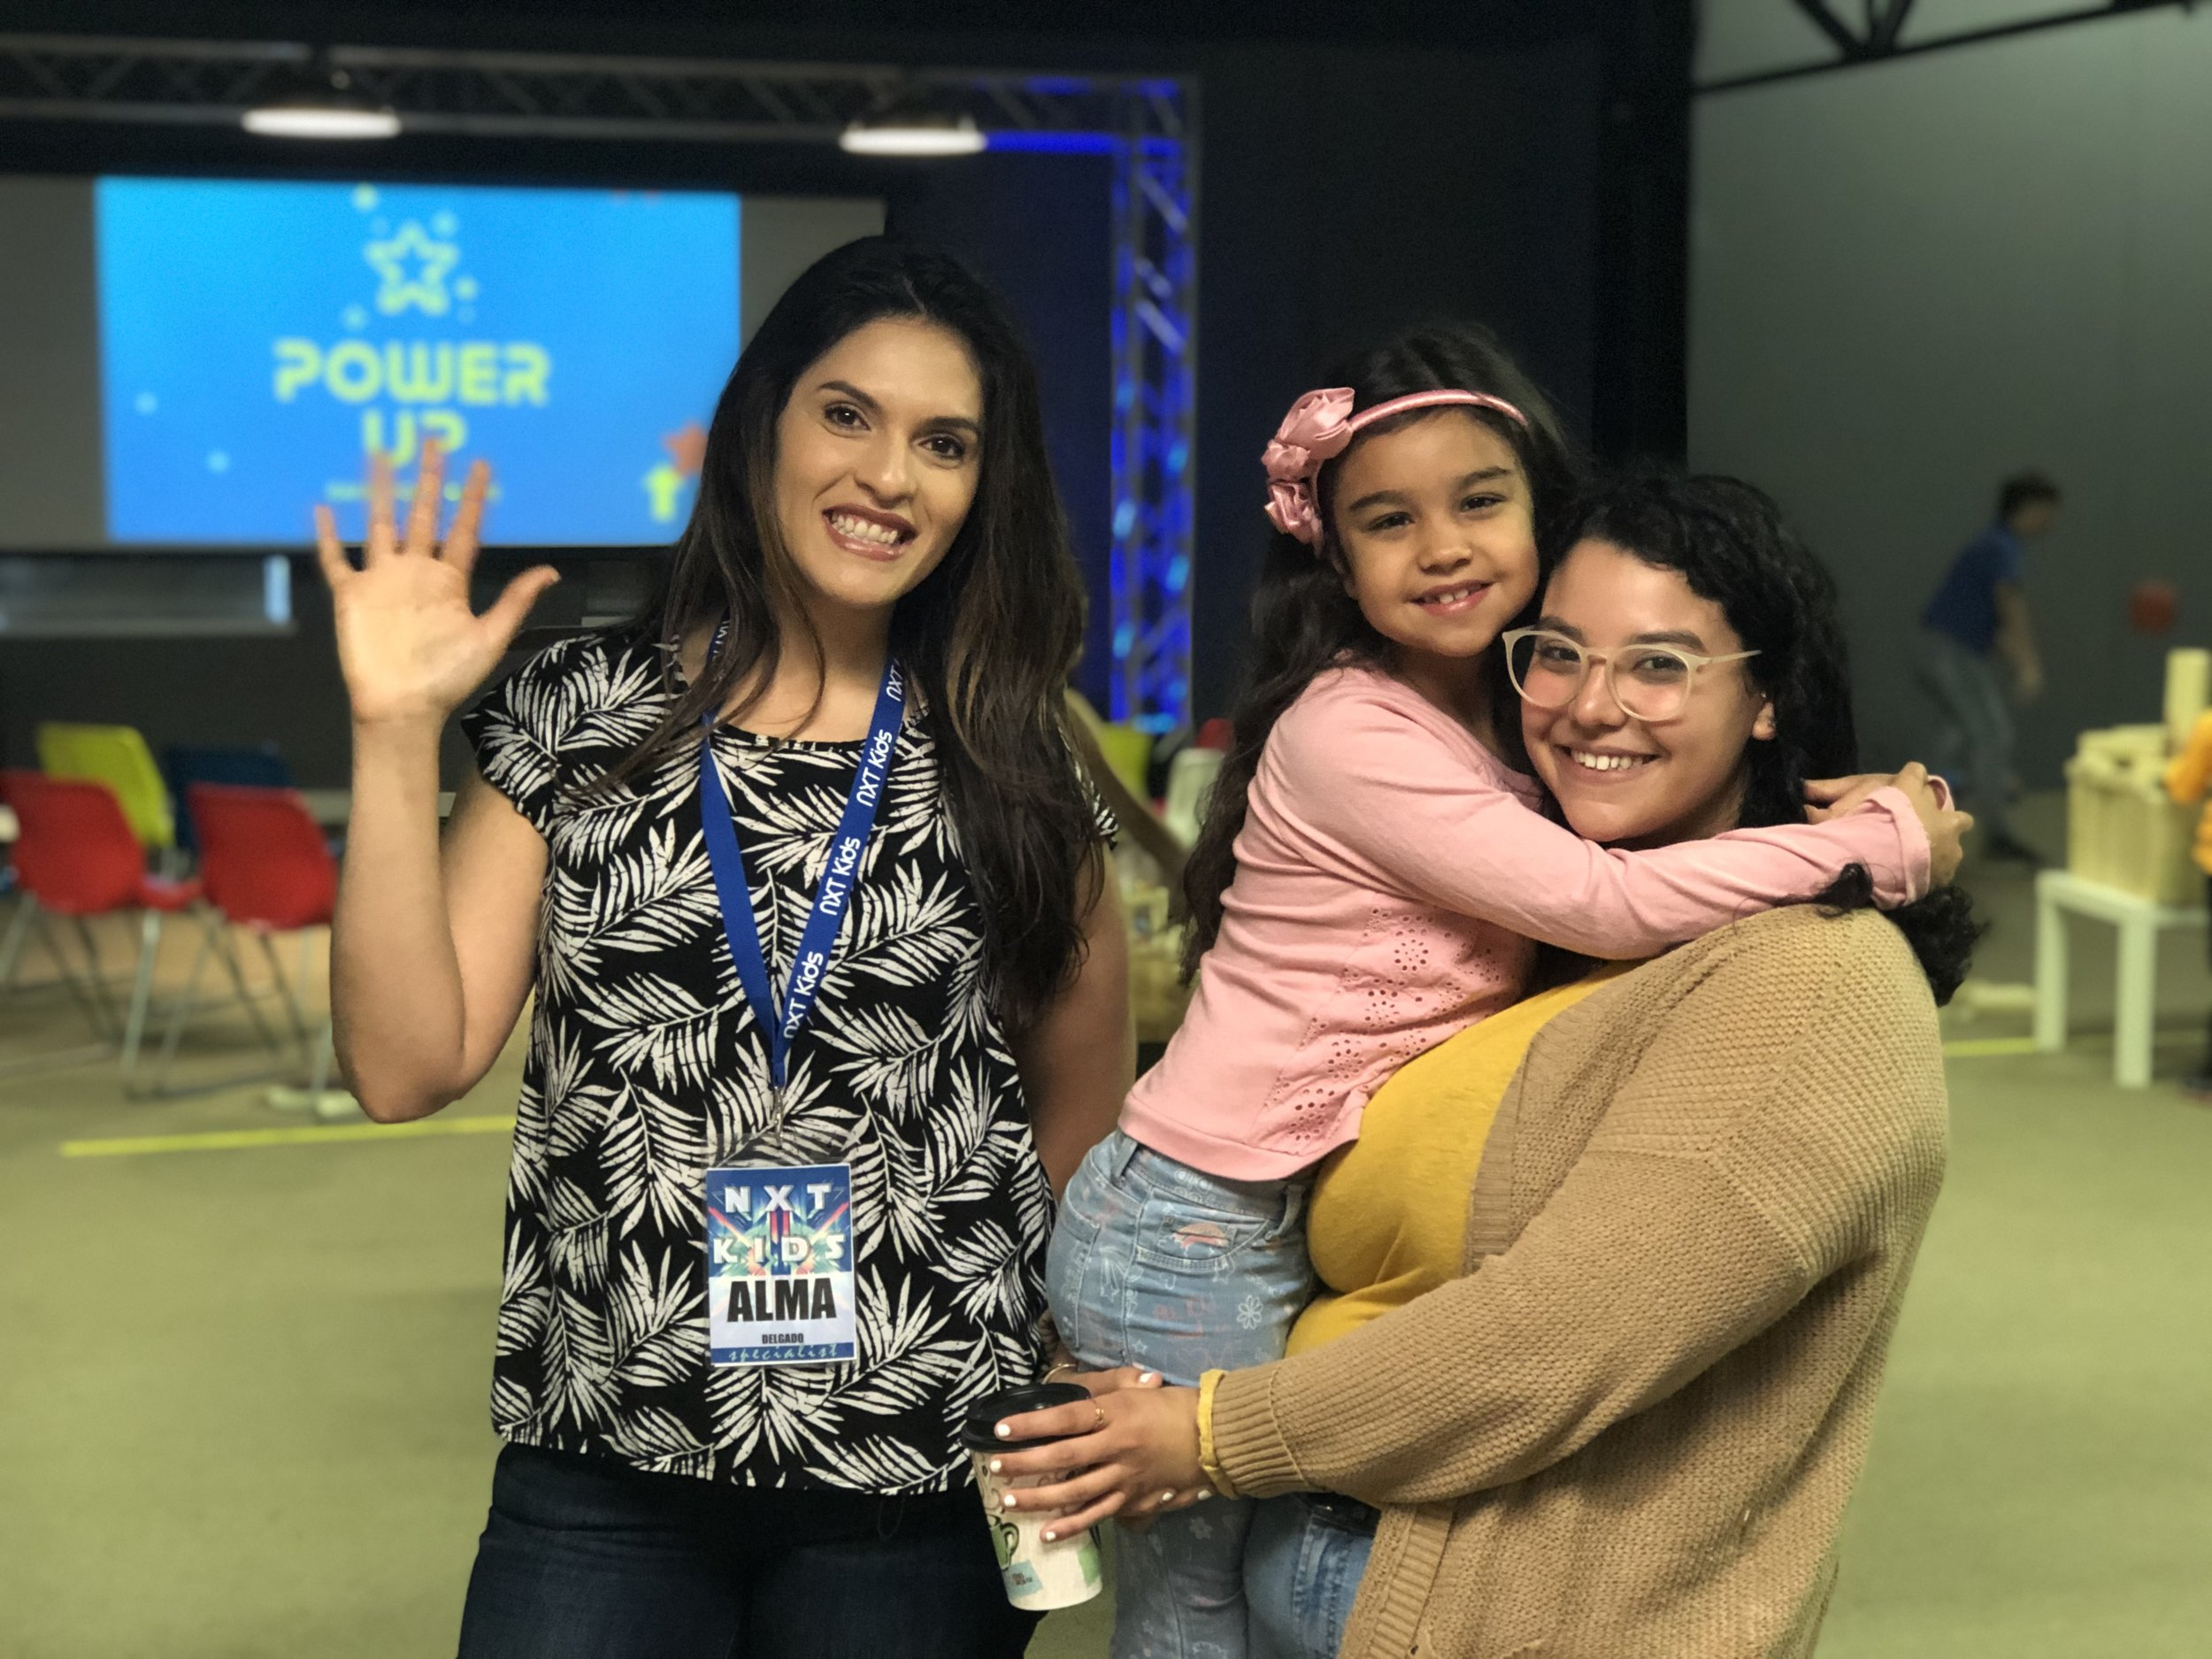 NXTkids:1st - 5th Grade - Sundays 9 and 11amNXT Kids provides students with an age appropriate experience to encounter God through Worship, Bible Teaching and Small Group Activities. (Doors open 15 minutes before service)